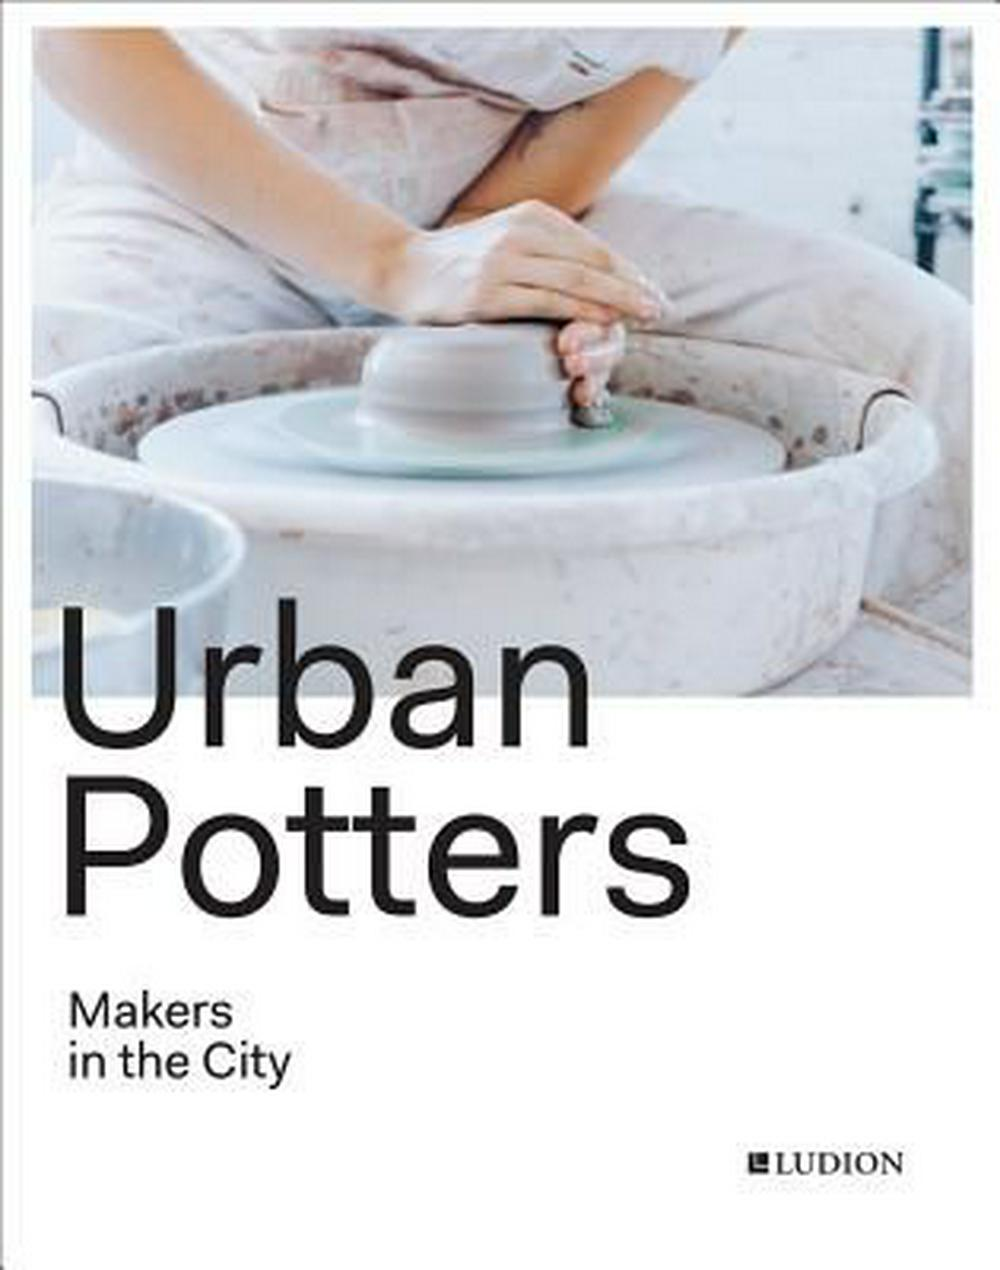 Urban Potters: Makers in the City by Katie Treggiden, ISBN: 9781419727634